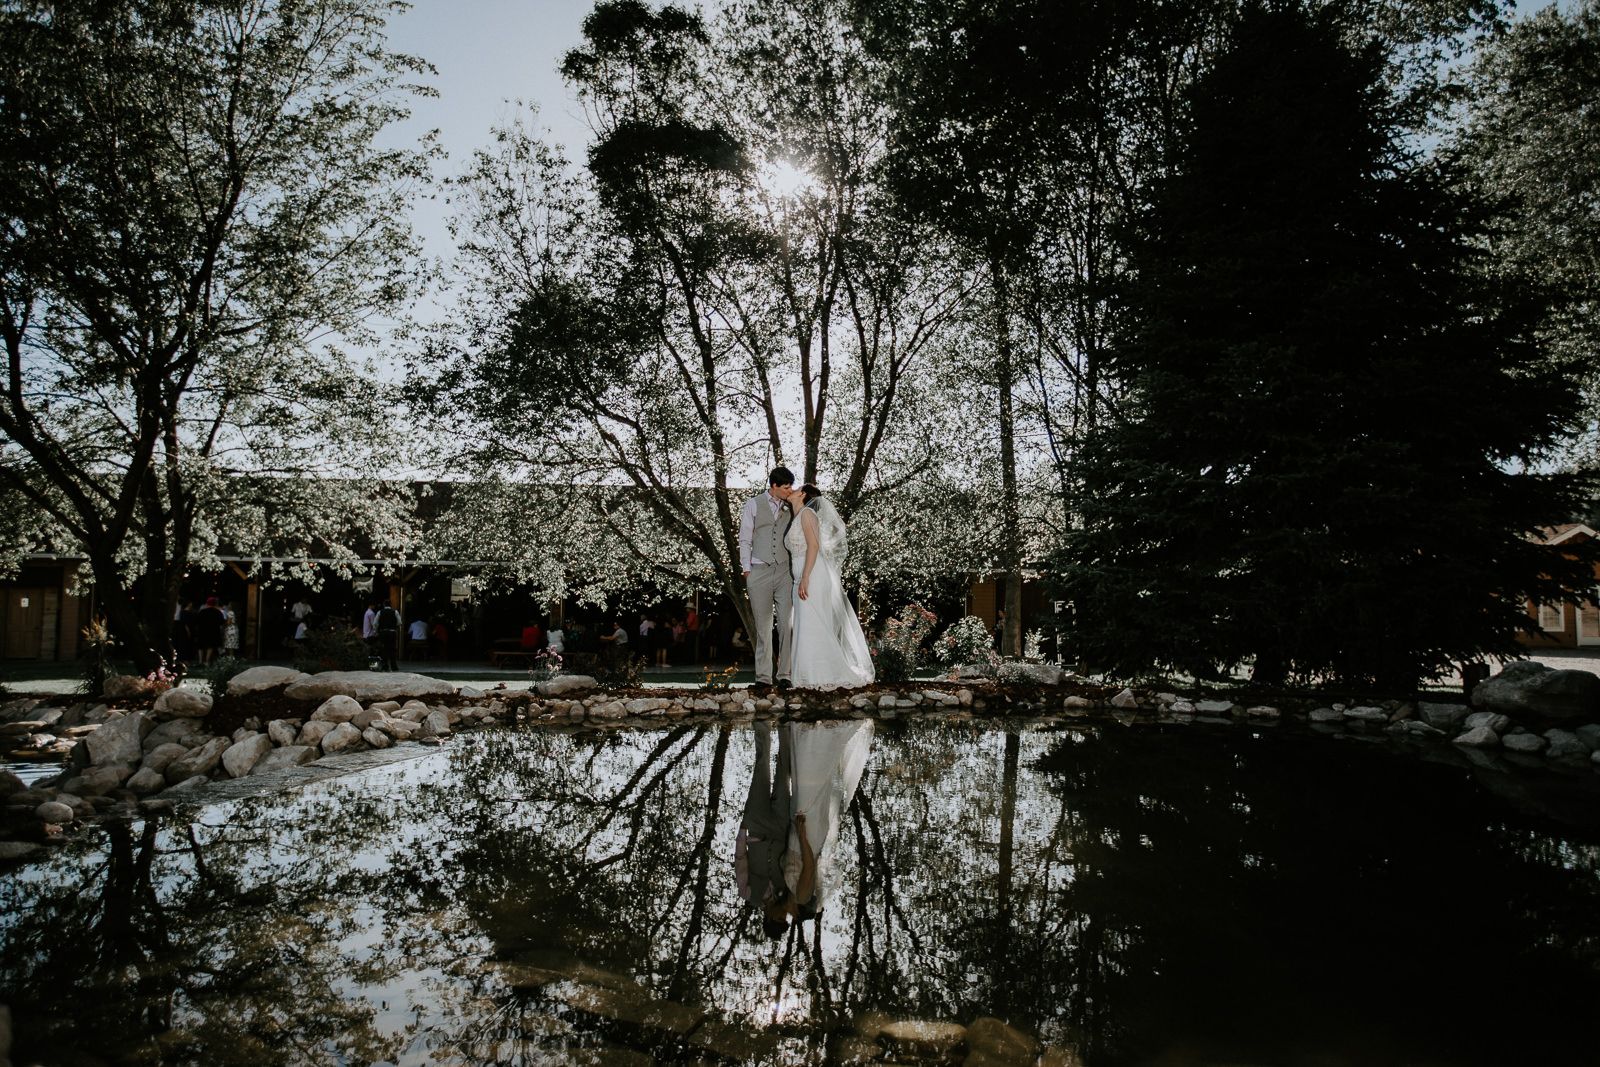 Bride in white dress and groom in gray suit best with reflections